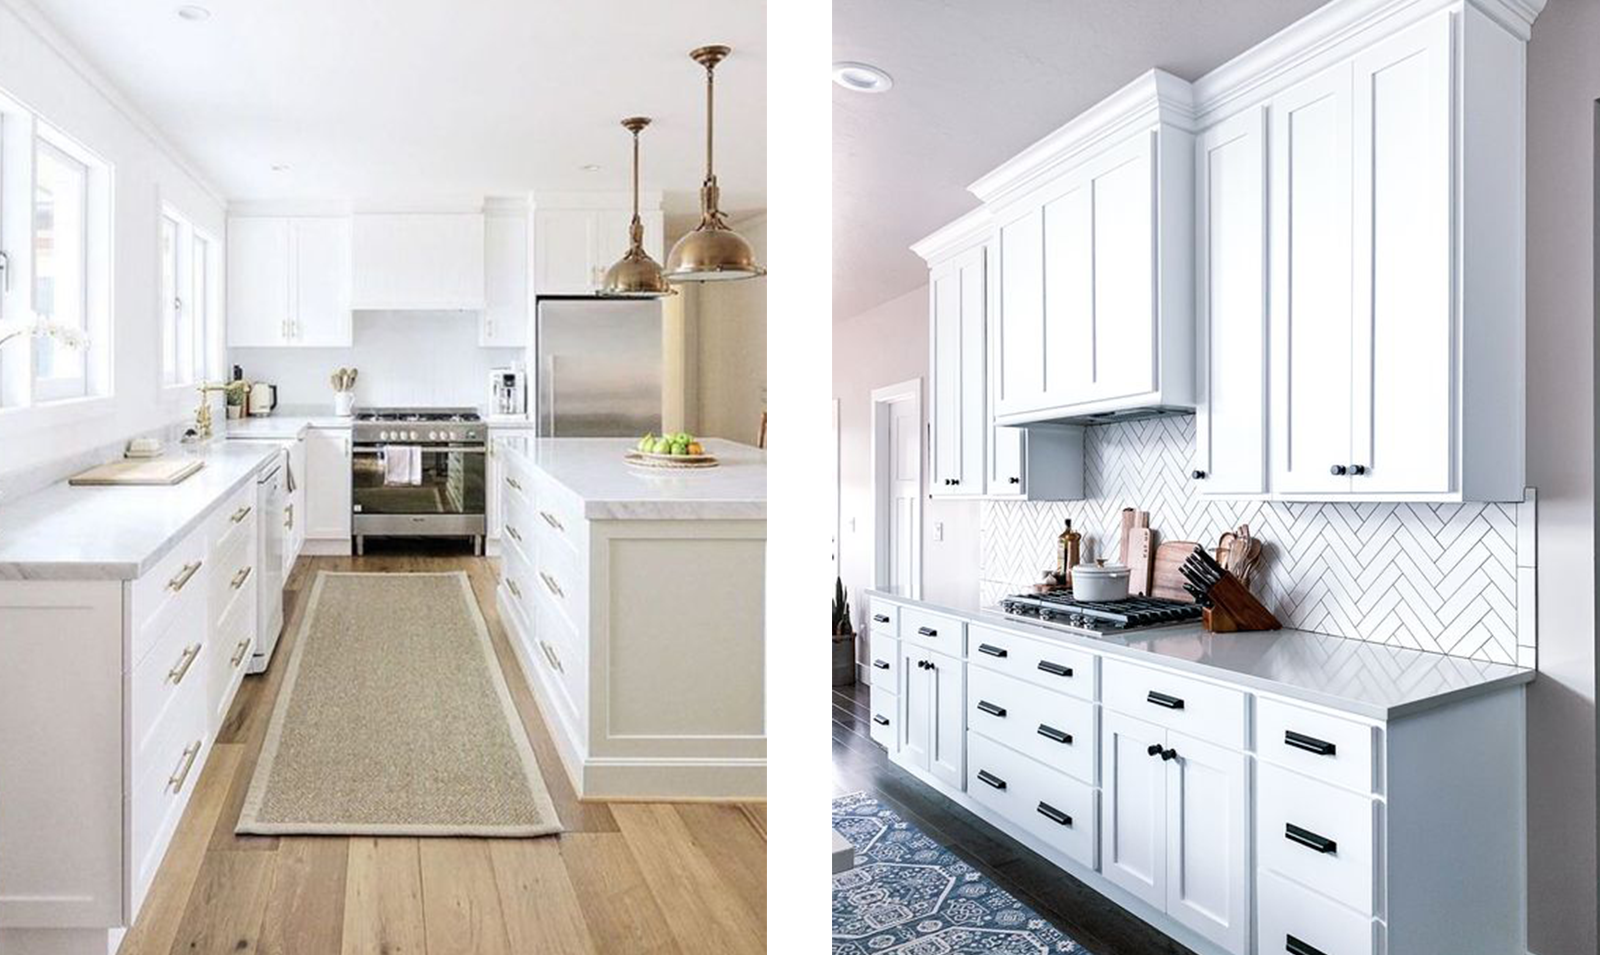 kitchens-white-cabinets-backsplashes